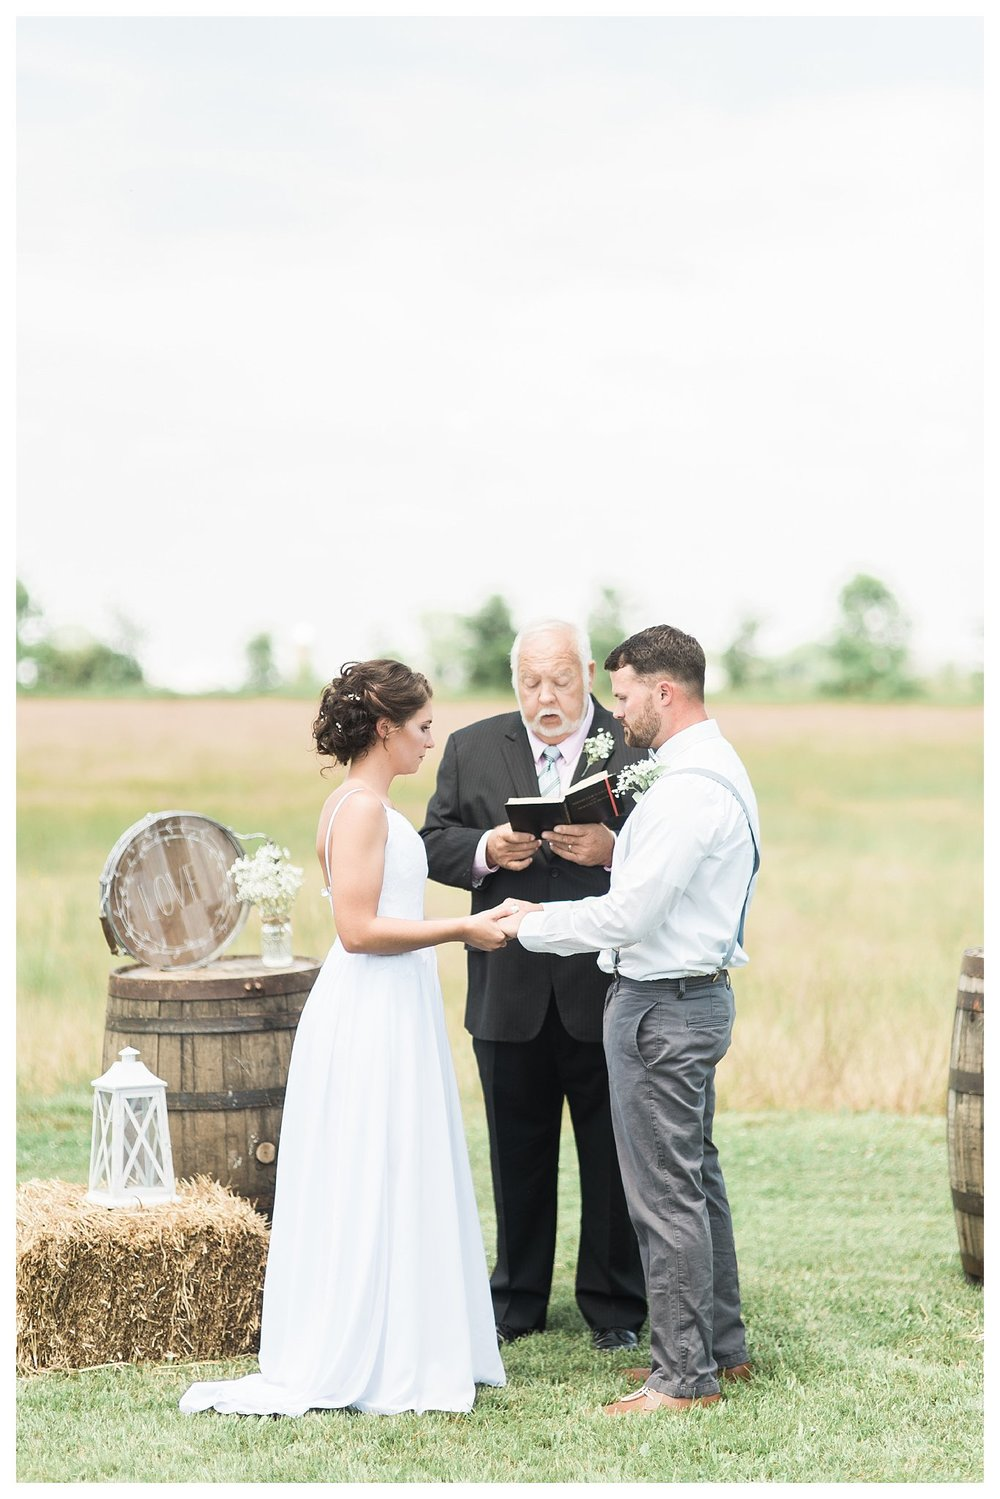 everleigh-photography.-cincinnati-wedding-photographer-at-the-barn-winery-13